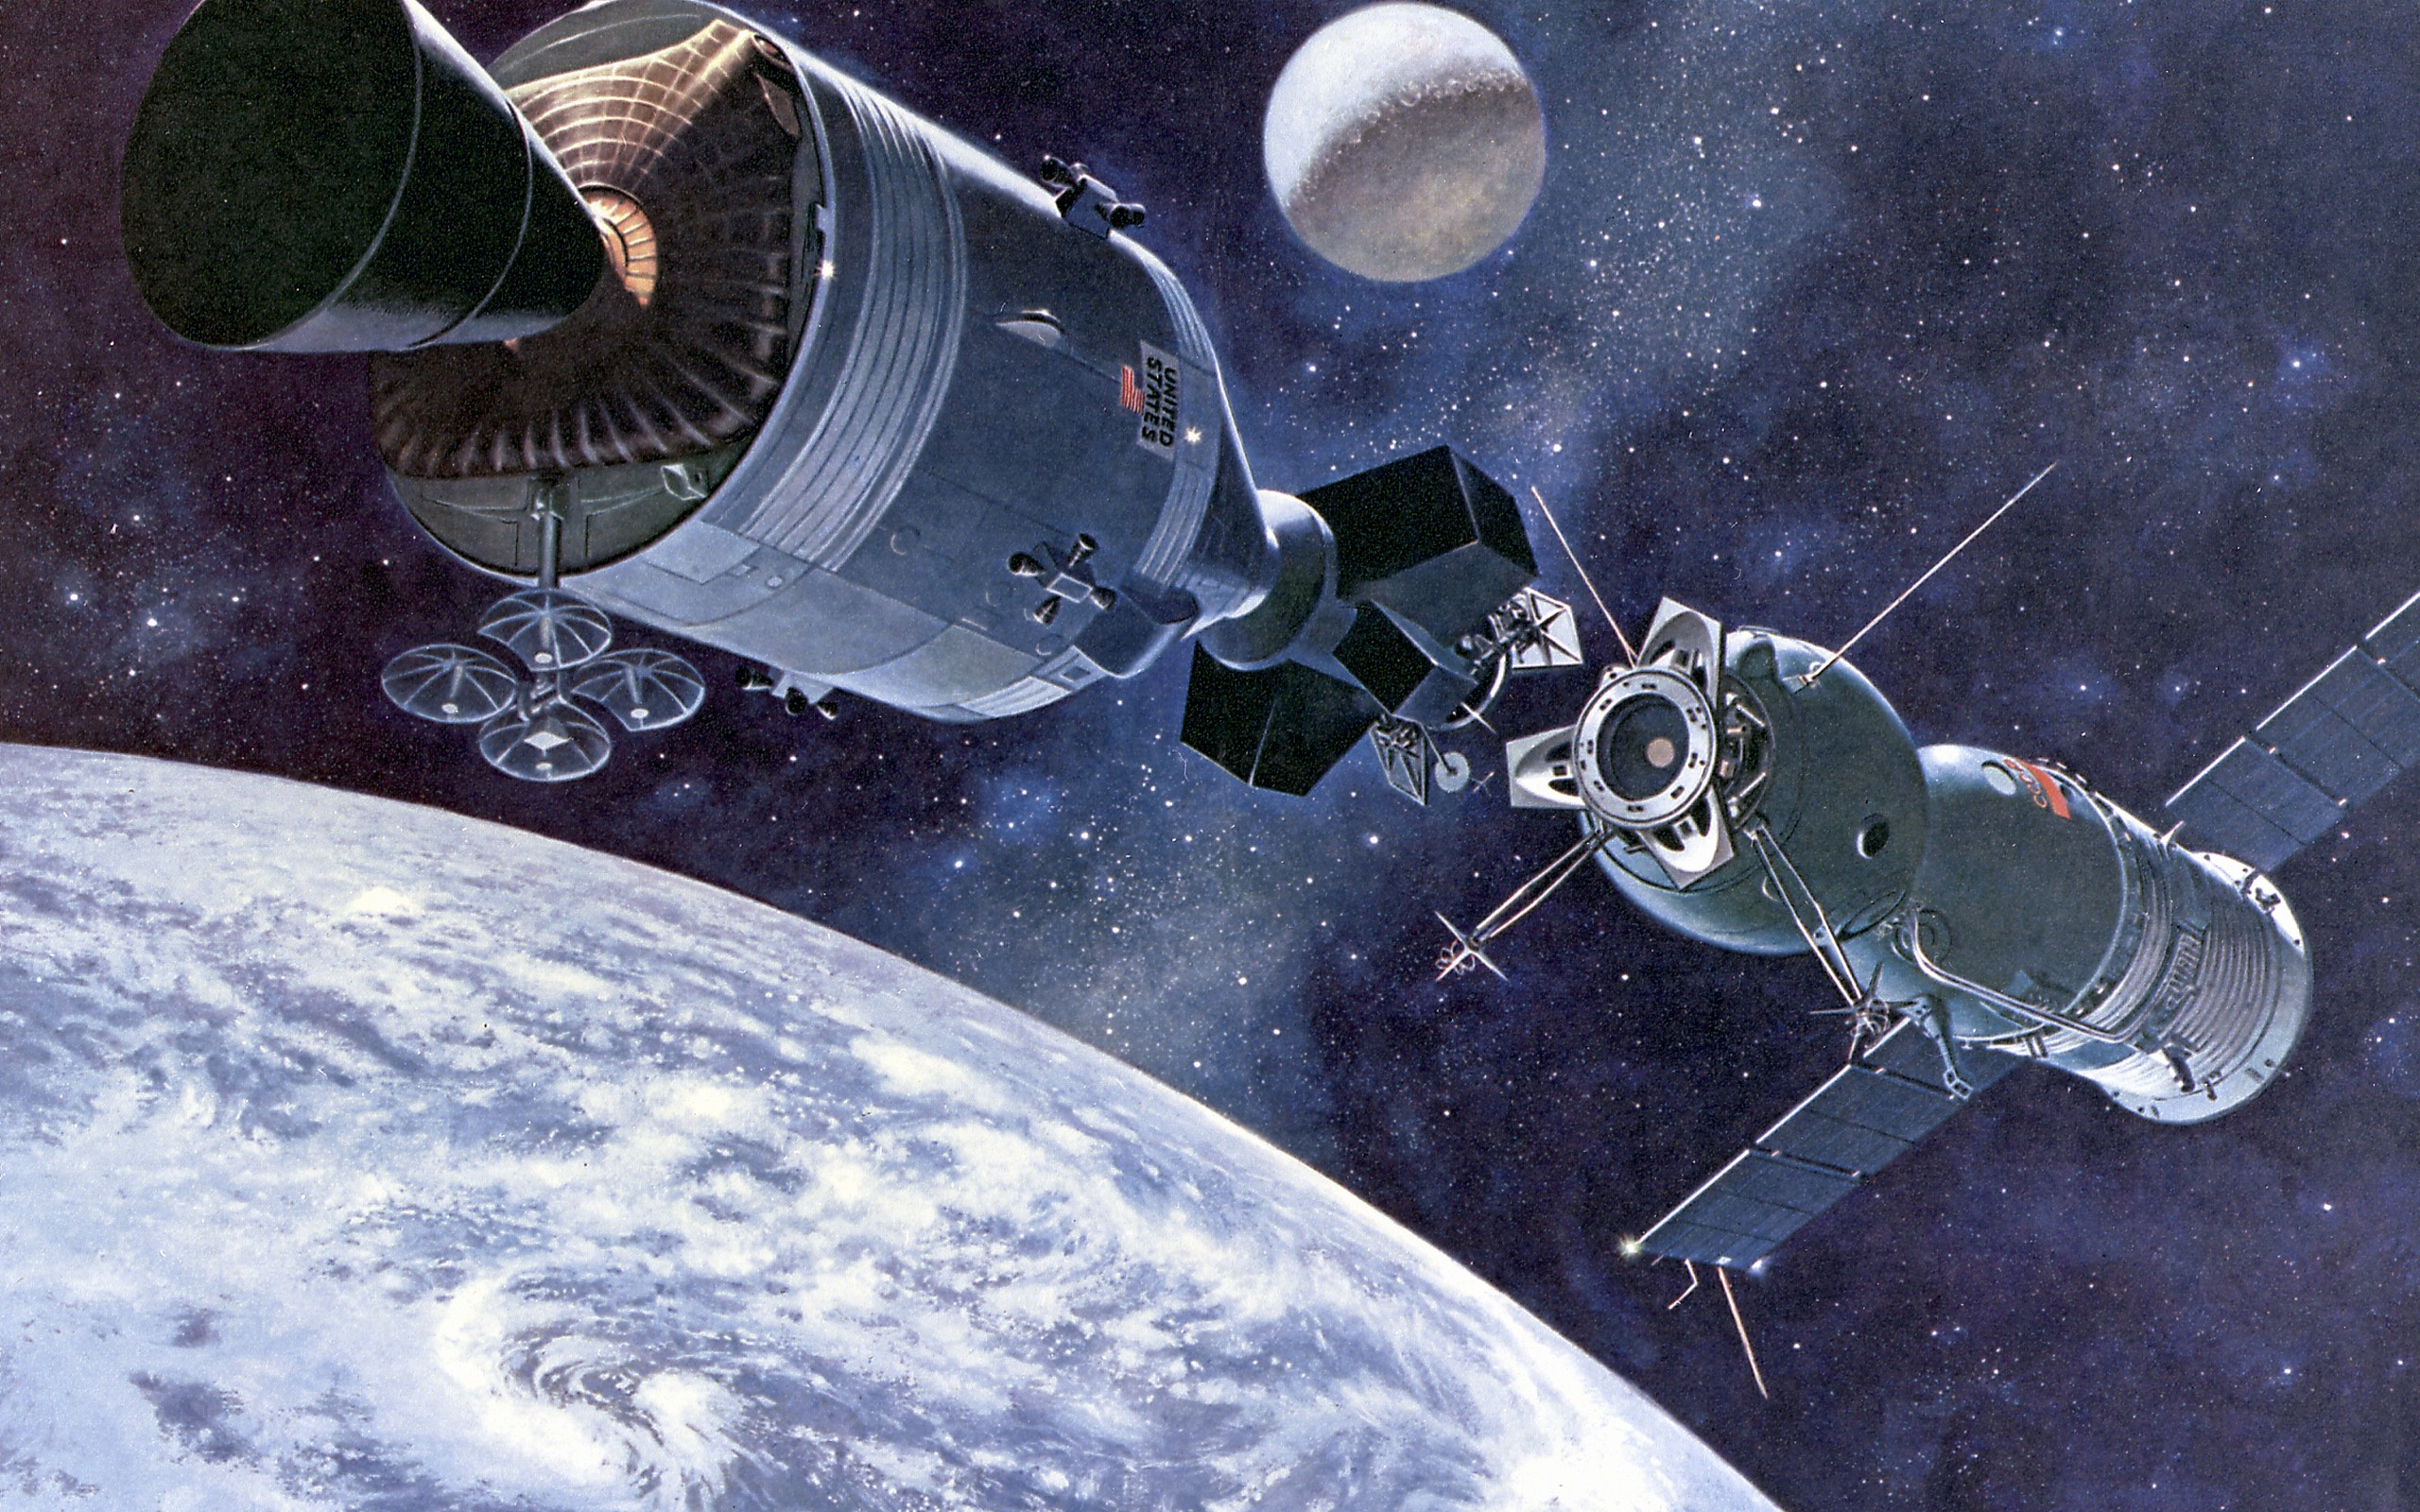 Satellite in outer space